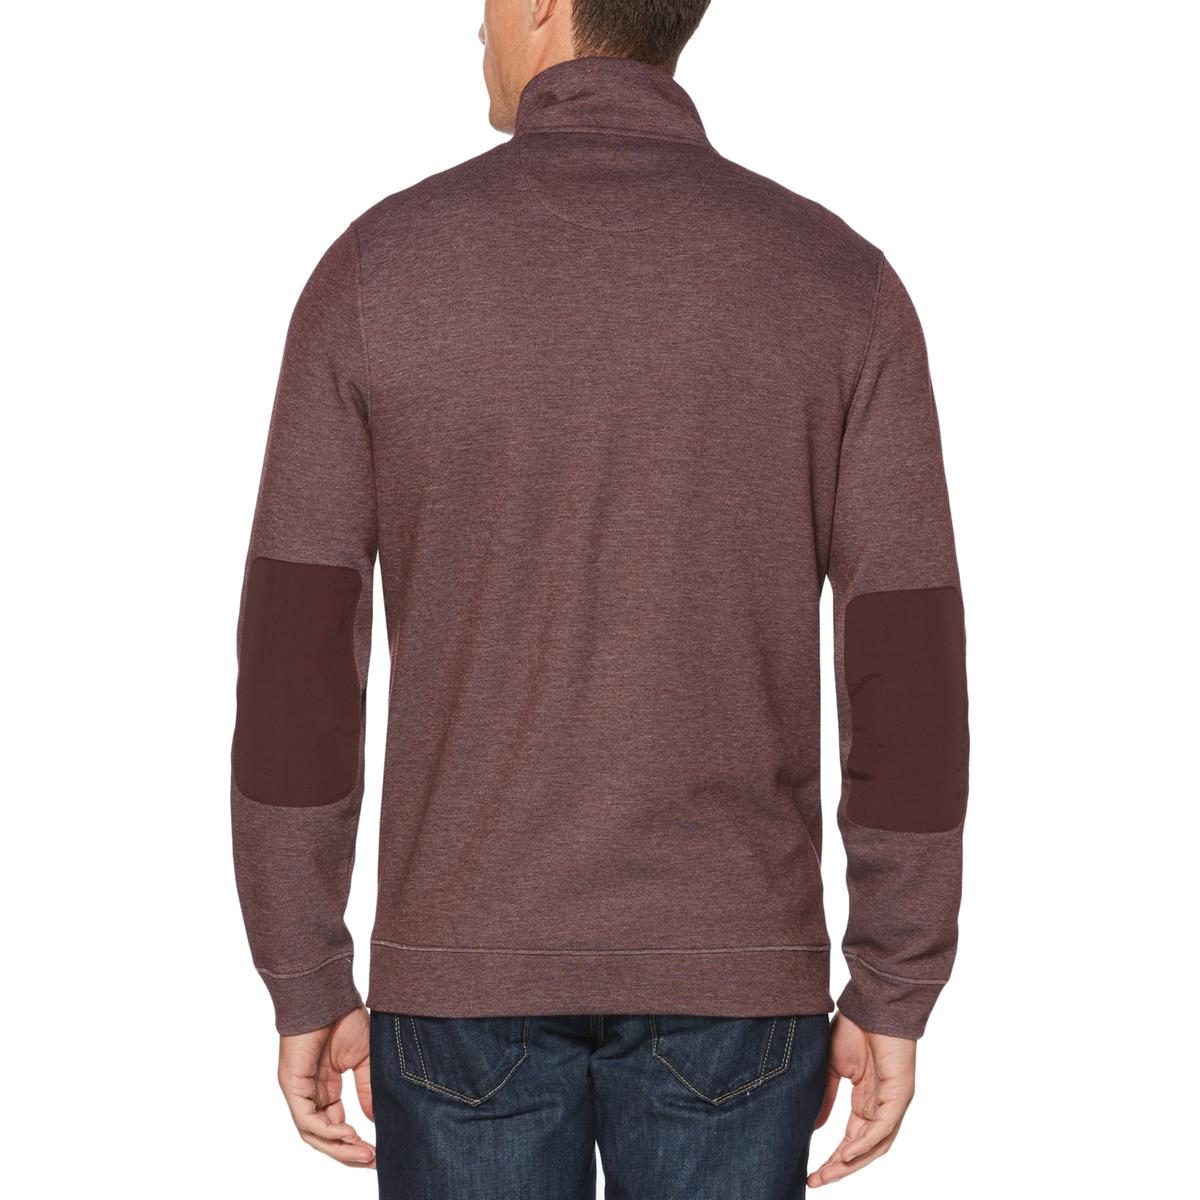 a828d6507b Details about Perry Ellis Mens Knit Heathered Long Sleeves Hoodie BHFO 0910